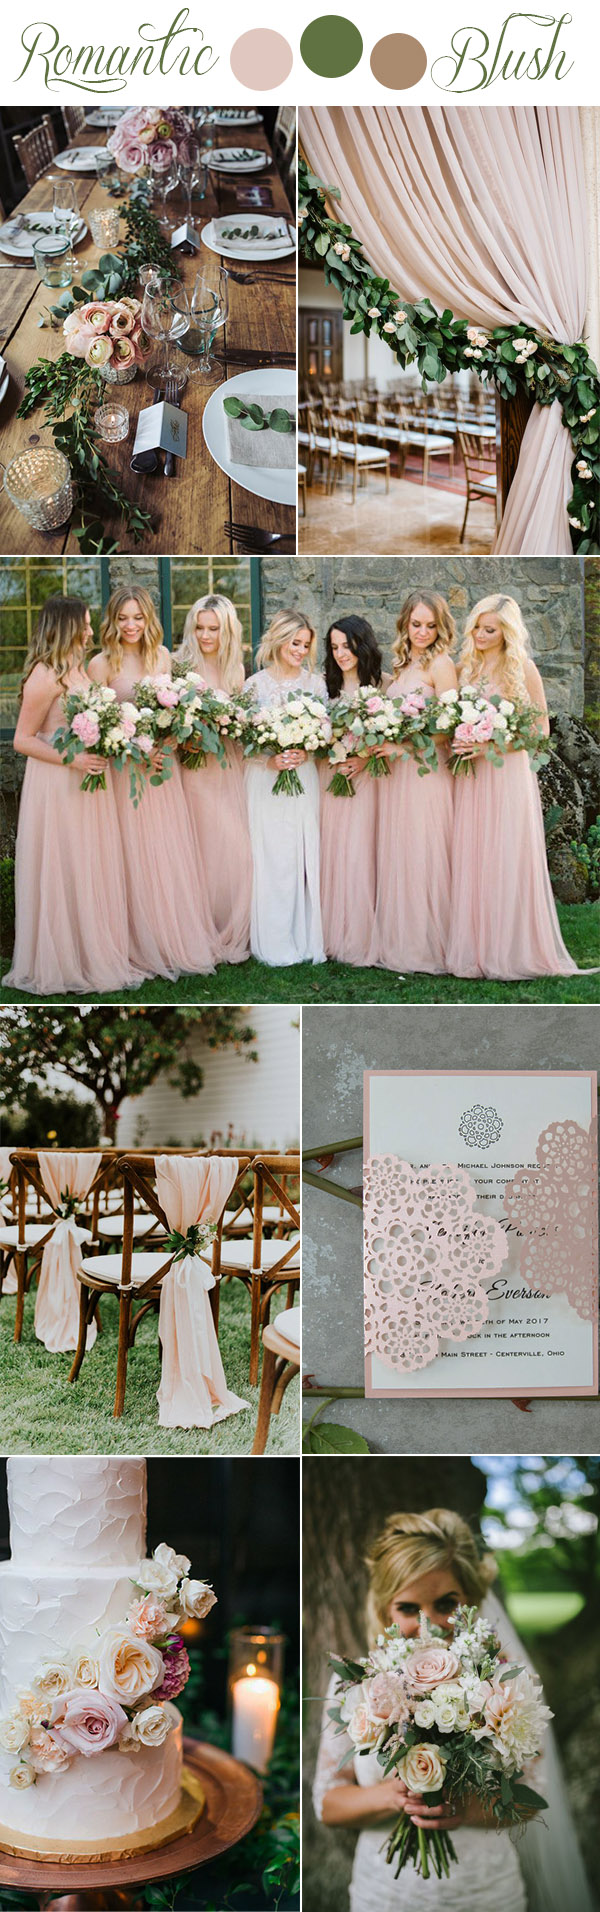 7 gorgeous rustic romantic and elegant wedding ideas color romantic blush pink rustic garden wedding color inpiration workwithnaturefo